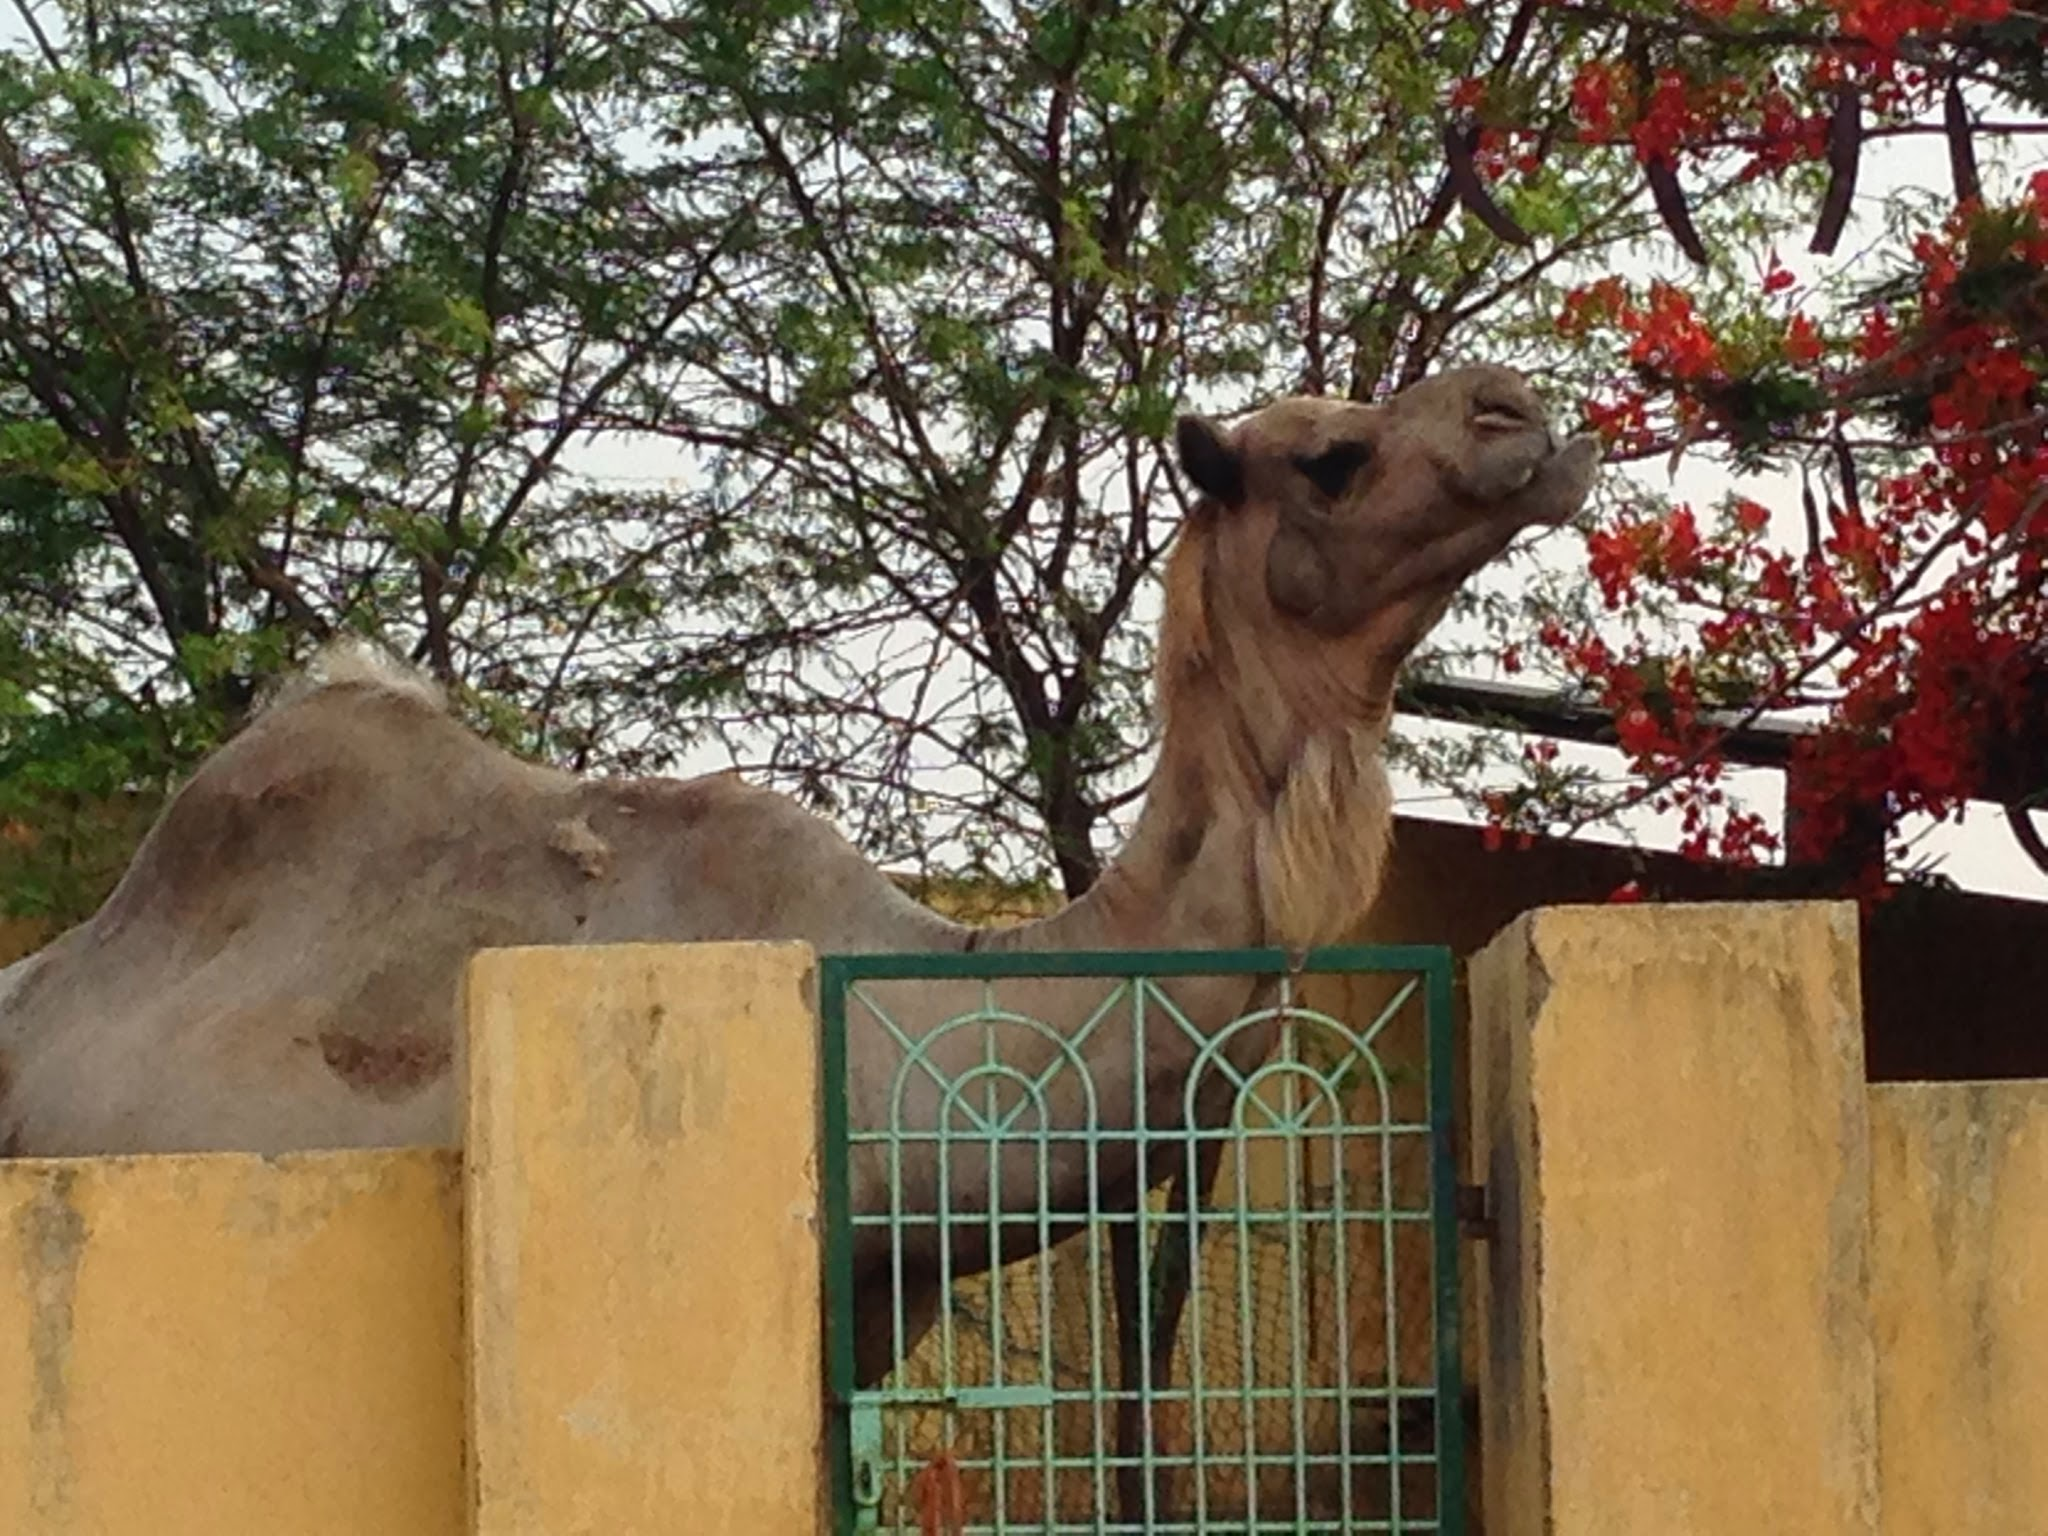 our camel smells the flowers  u2013 karuna society for animals